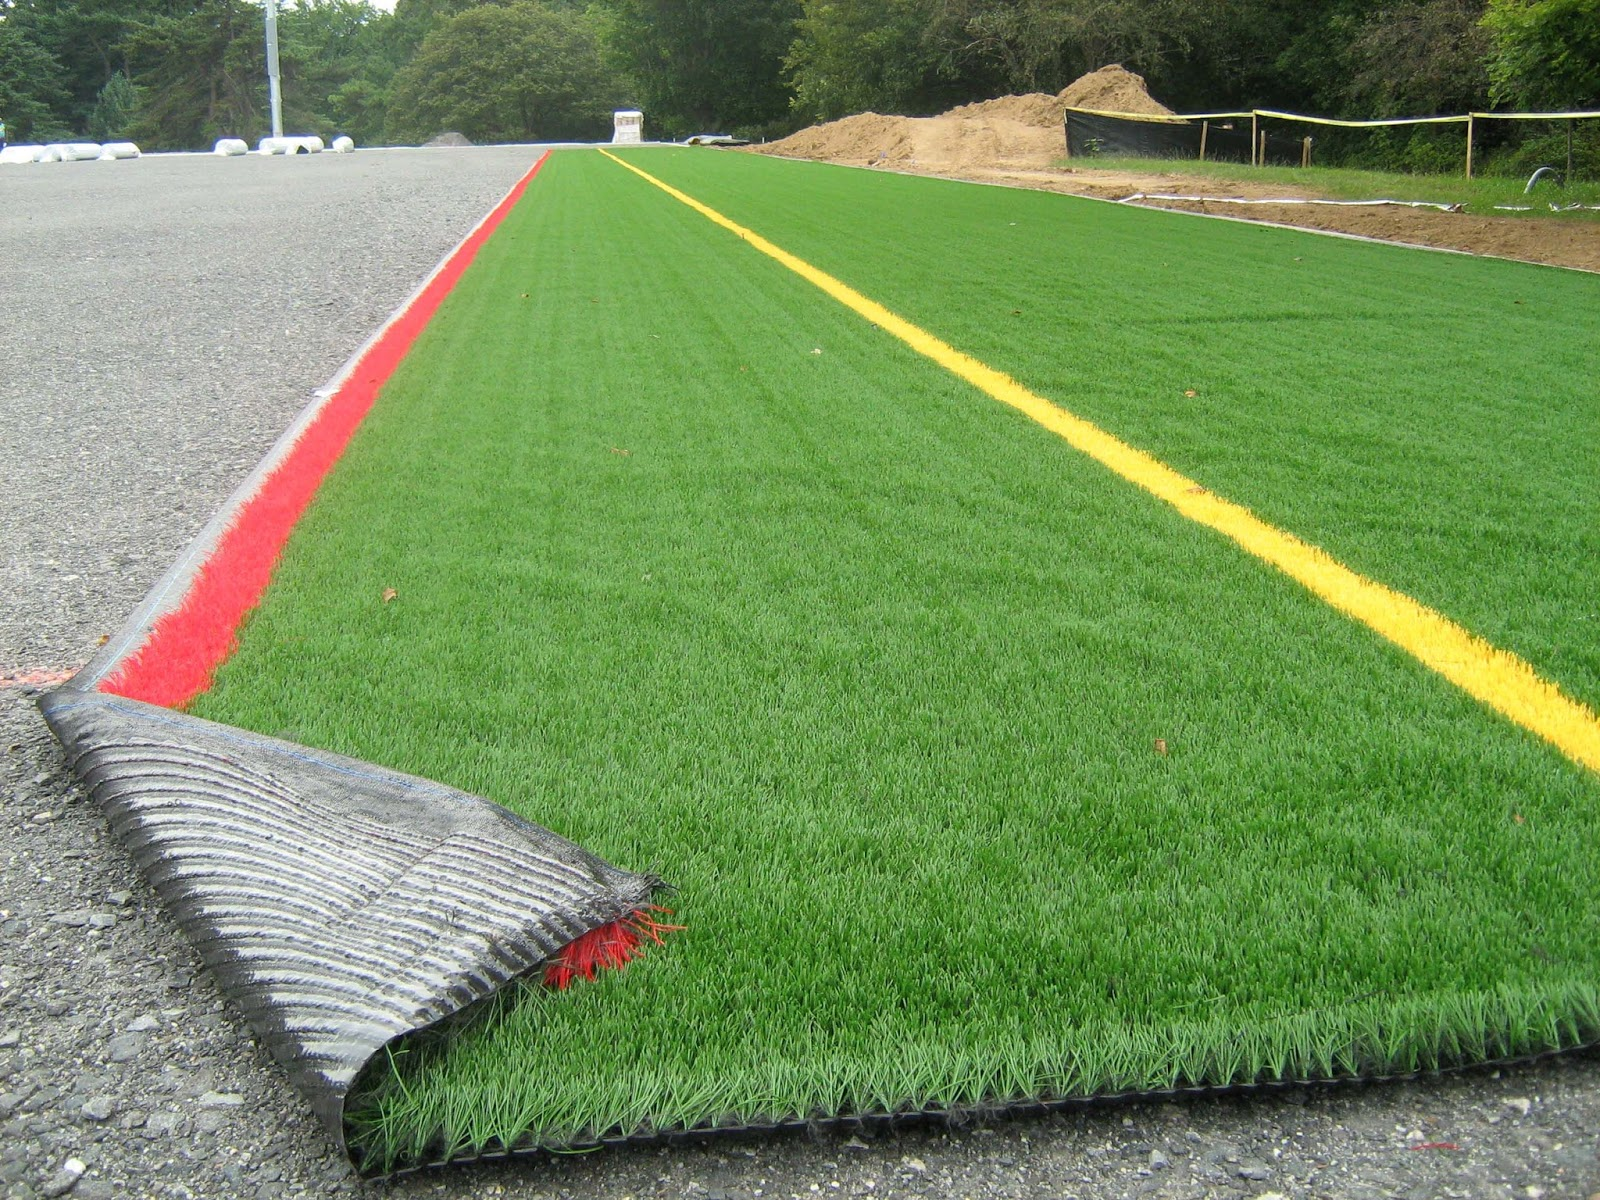 Artificial turf pros and cons - Pros And Cons Of A Turf Field